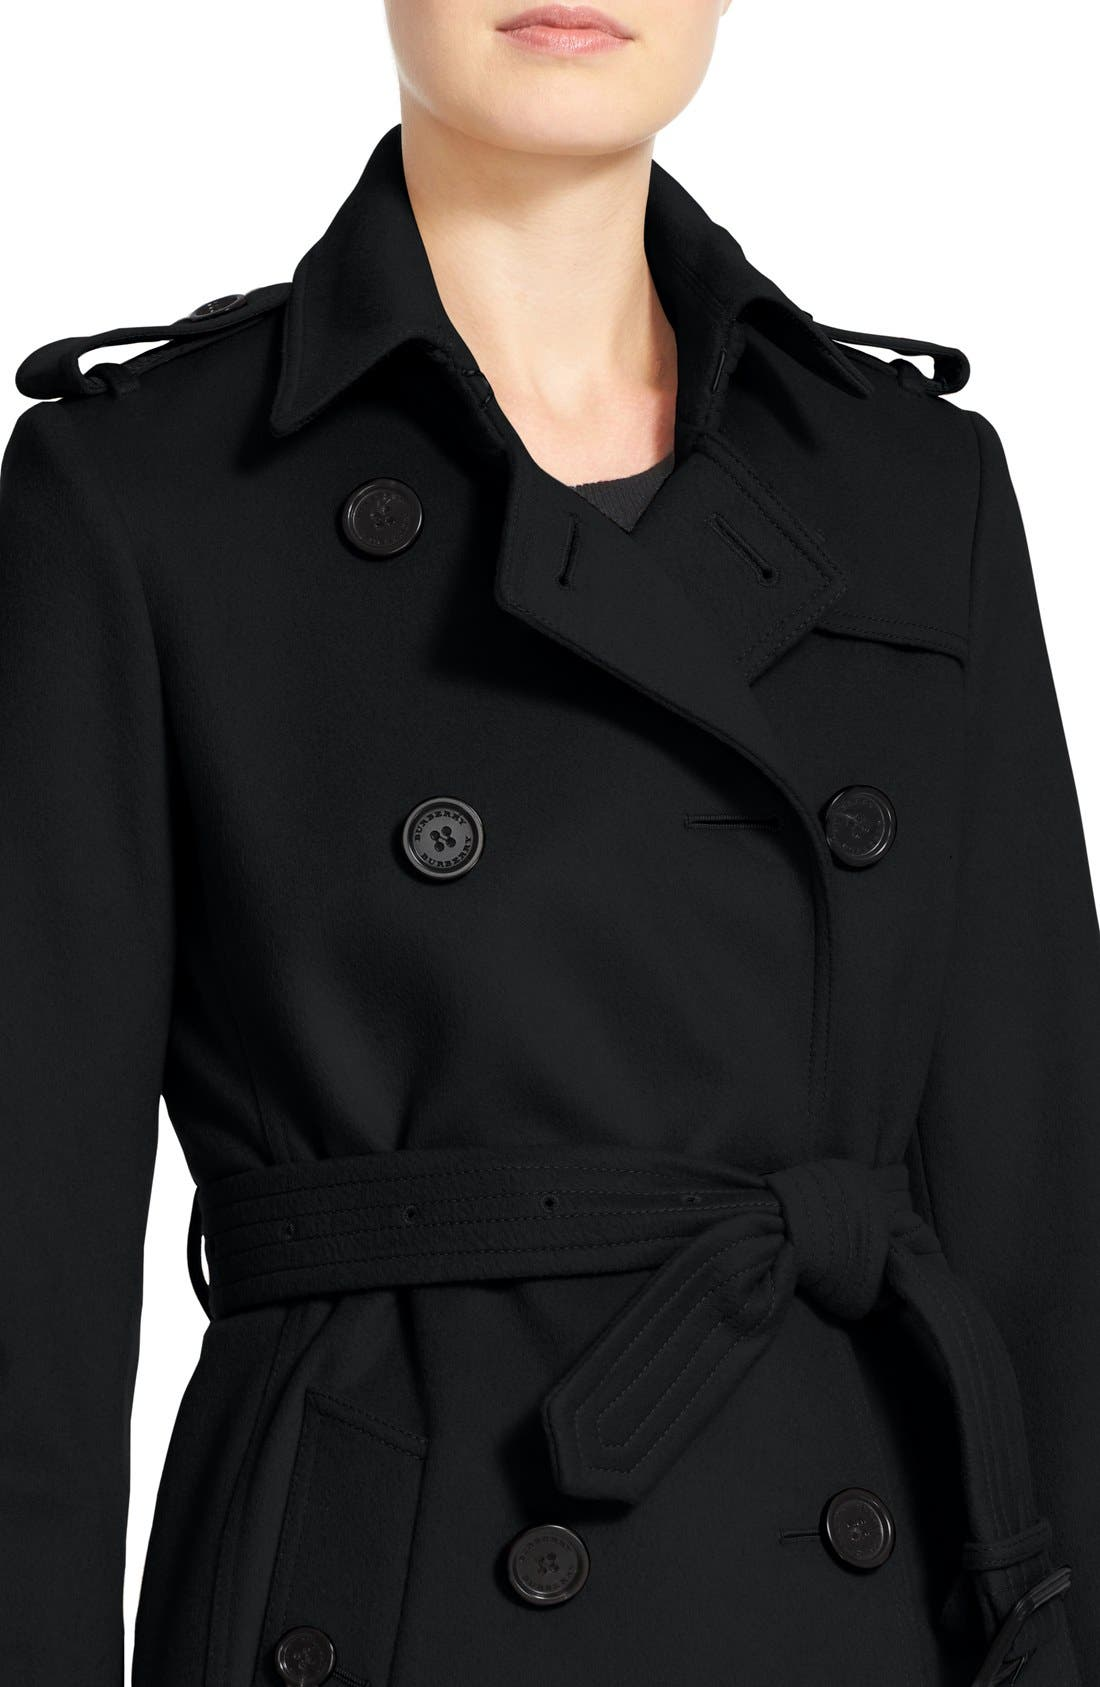 Kensington Double Breasted Wool & Cashmere Trench Coat,                             Alternate thumbnail 6, color,                             Black